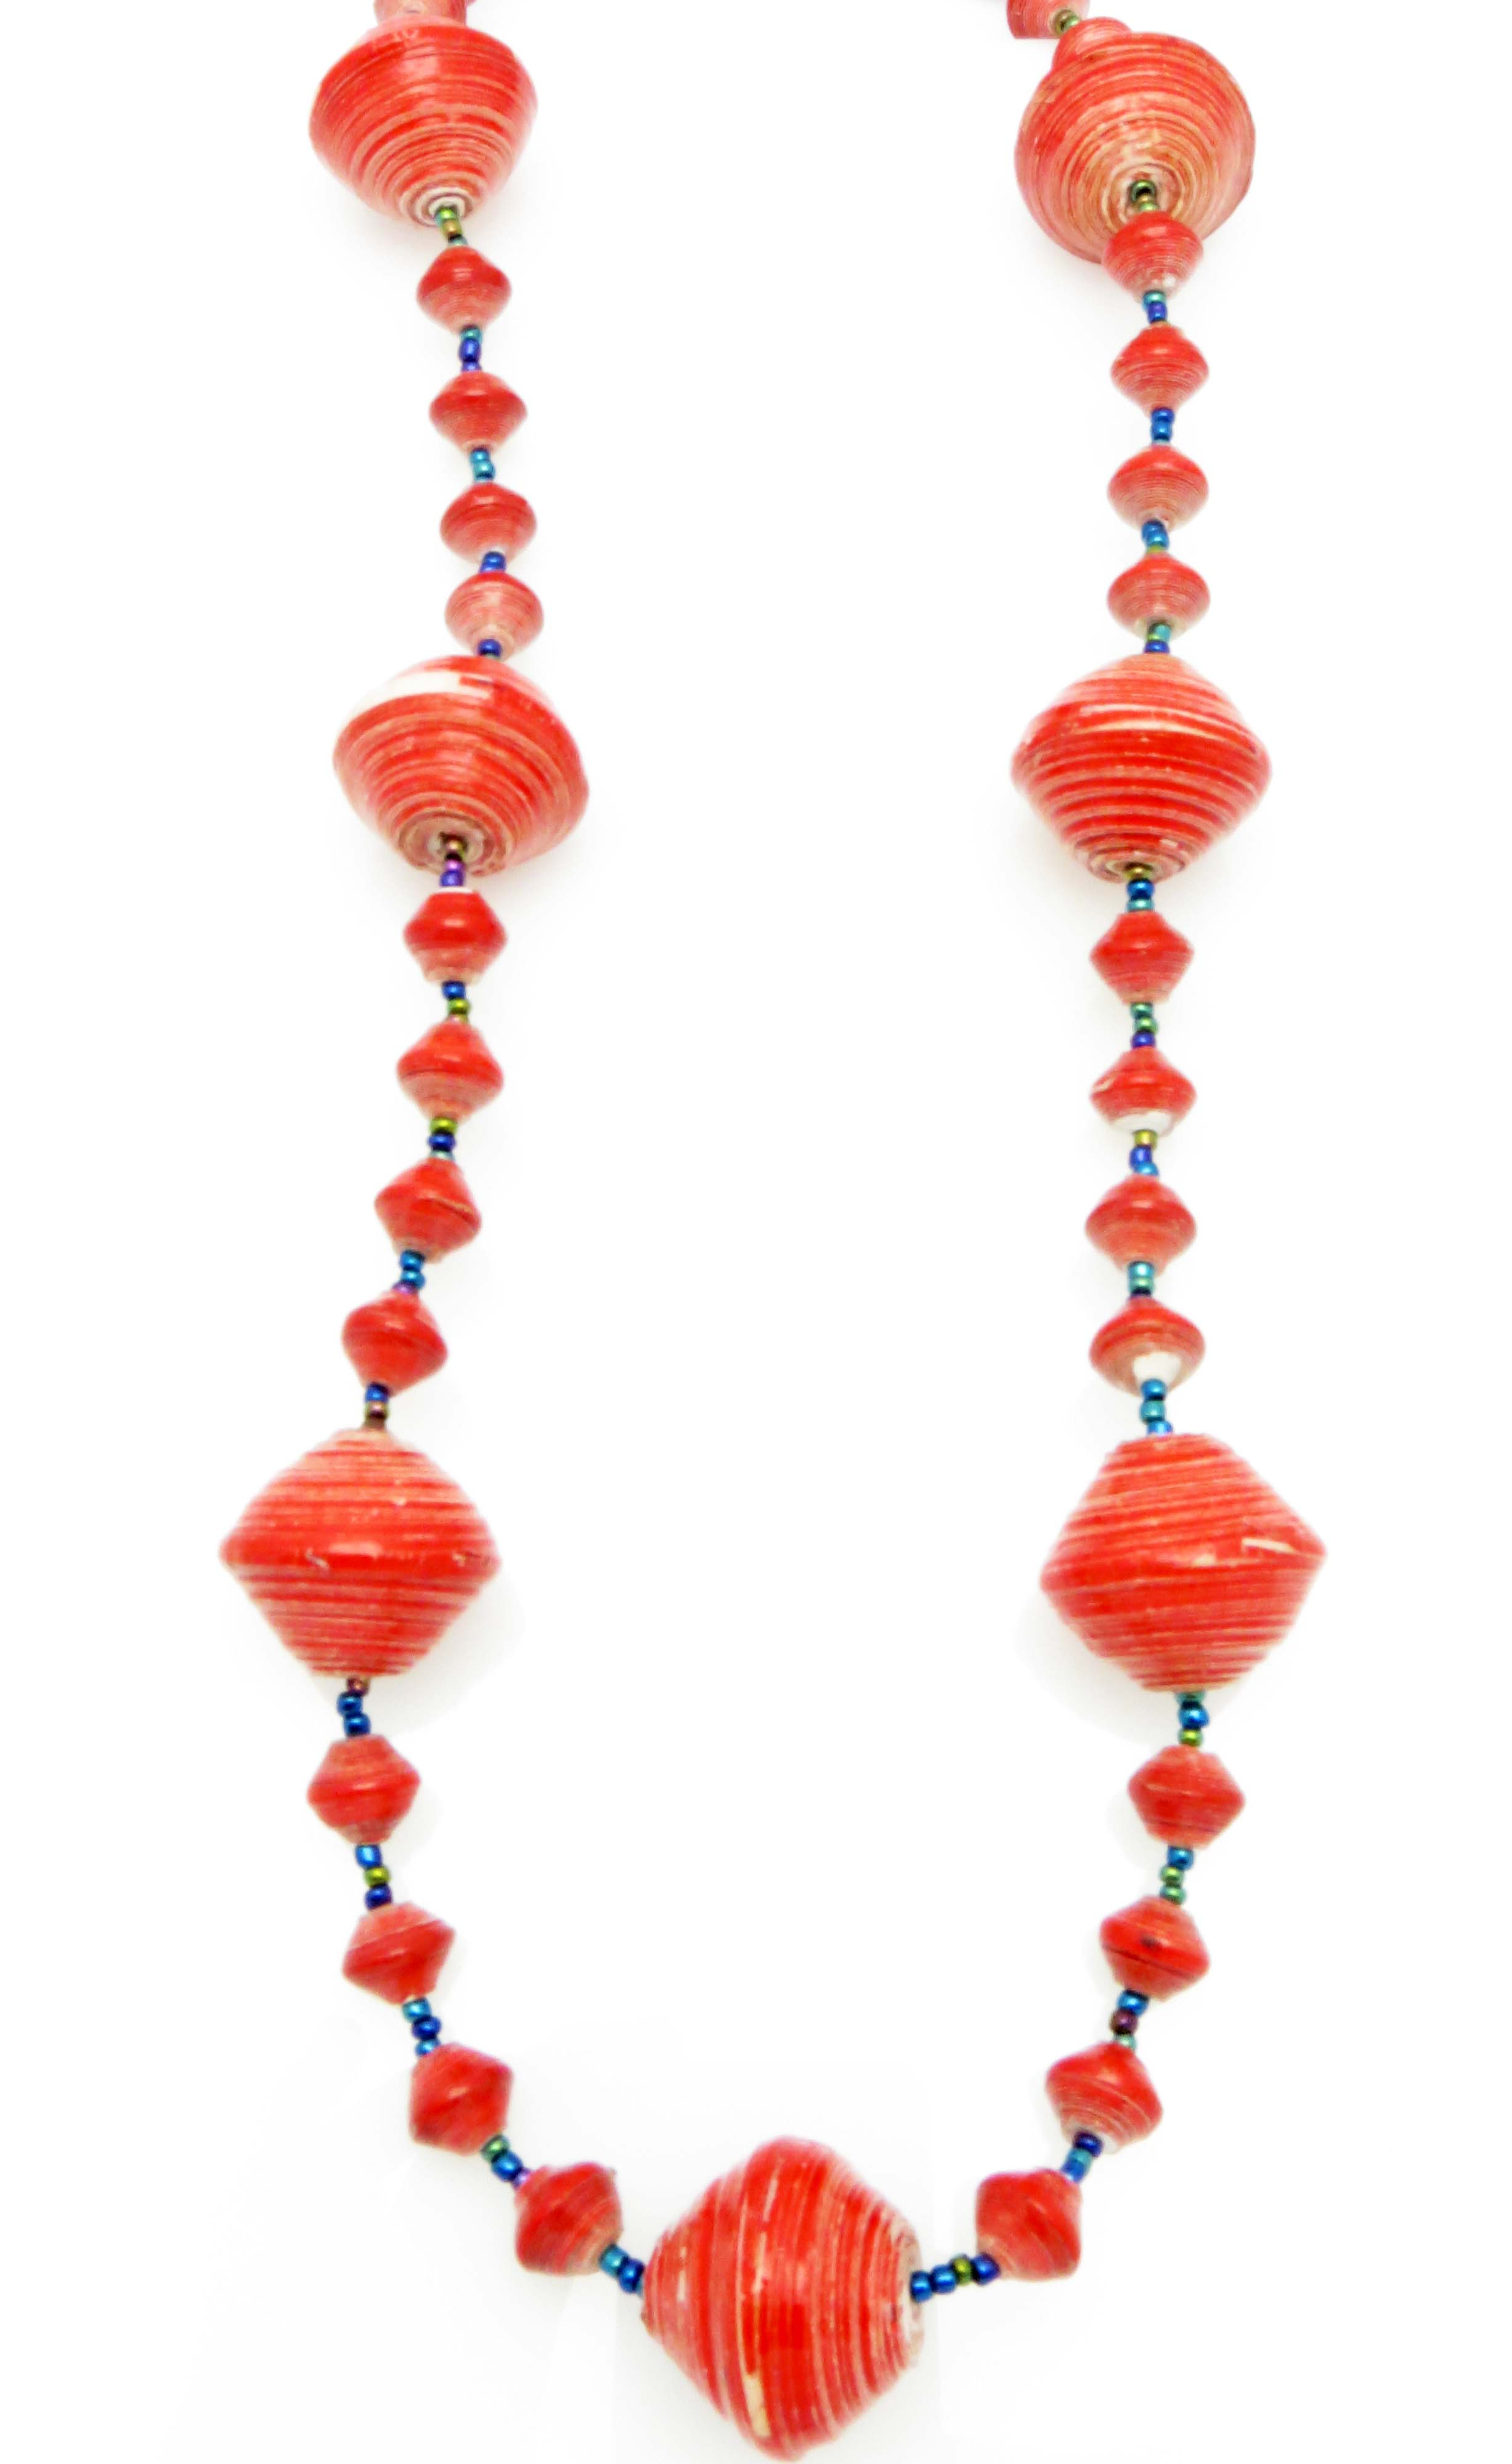 Red gigantic bead necklace